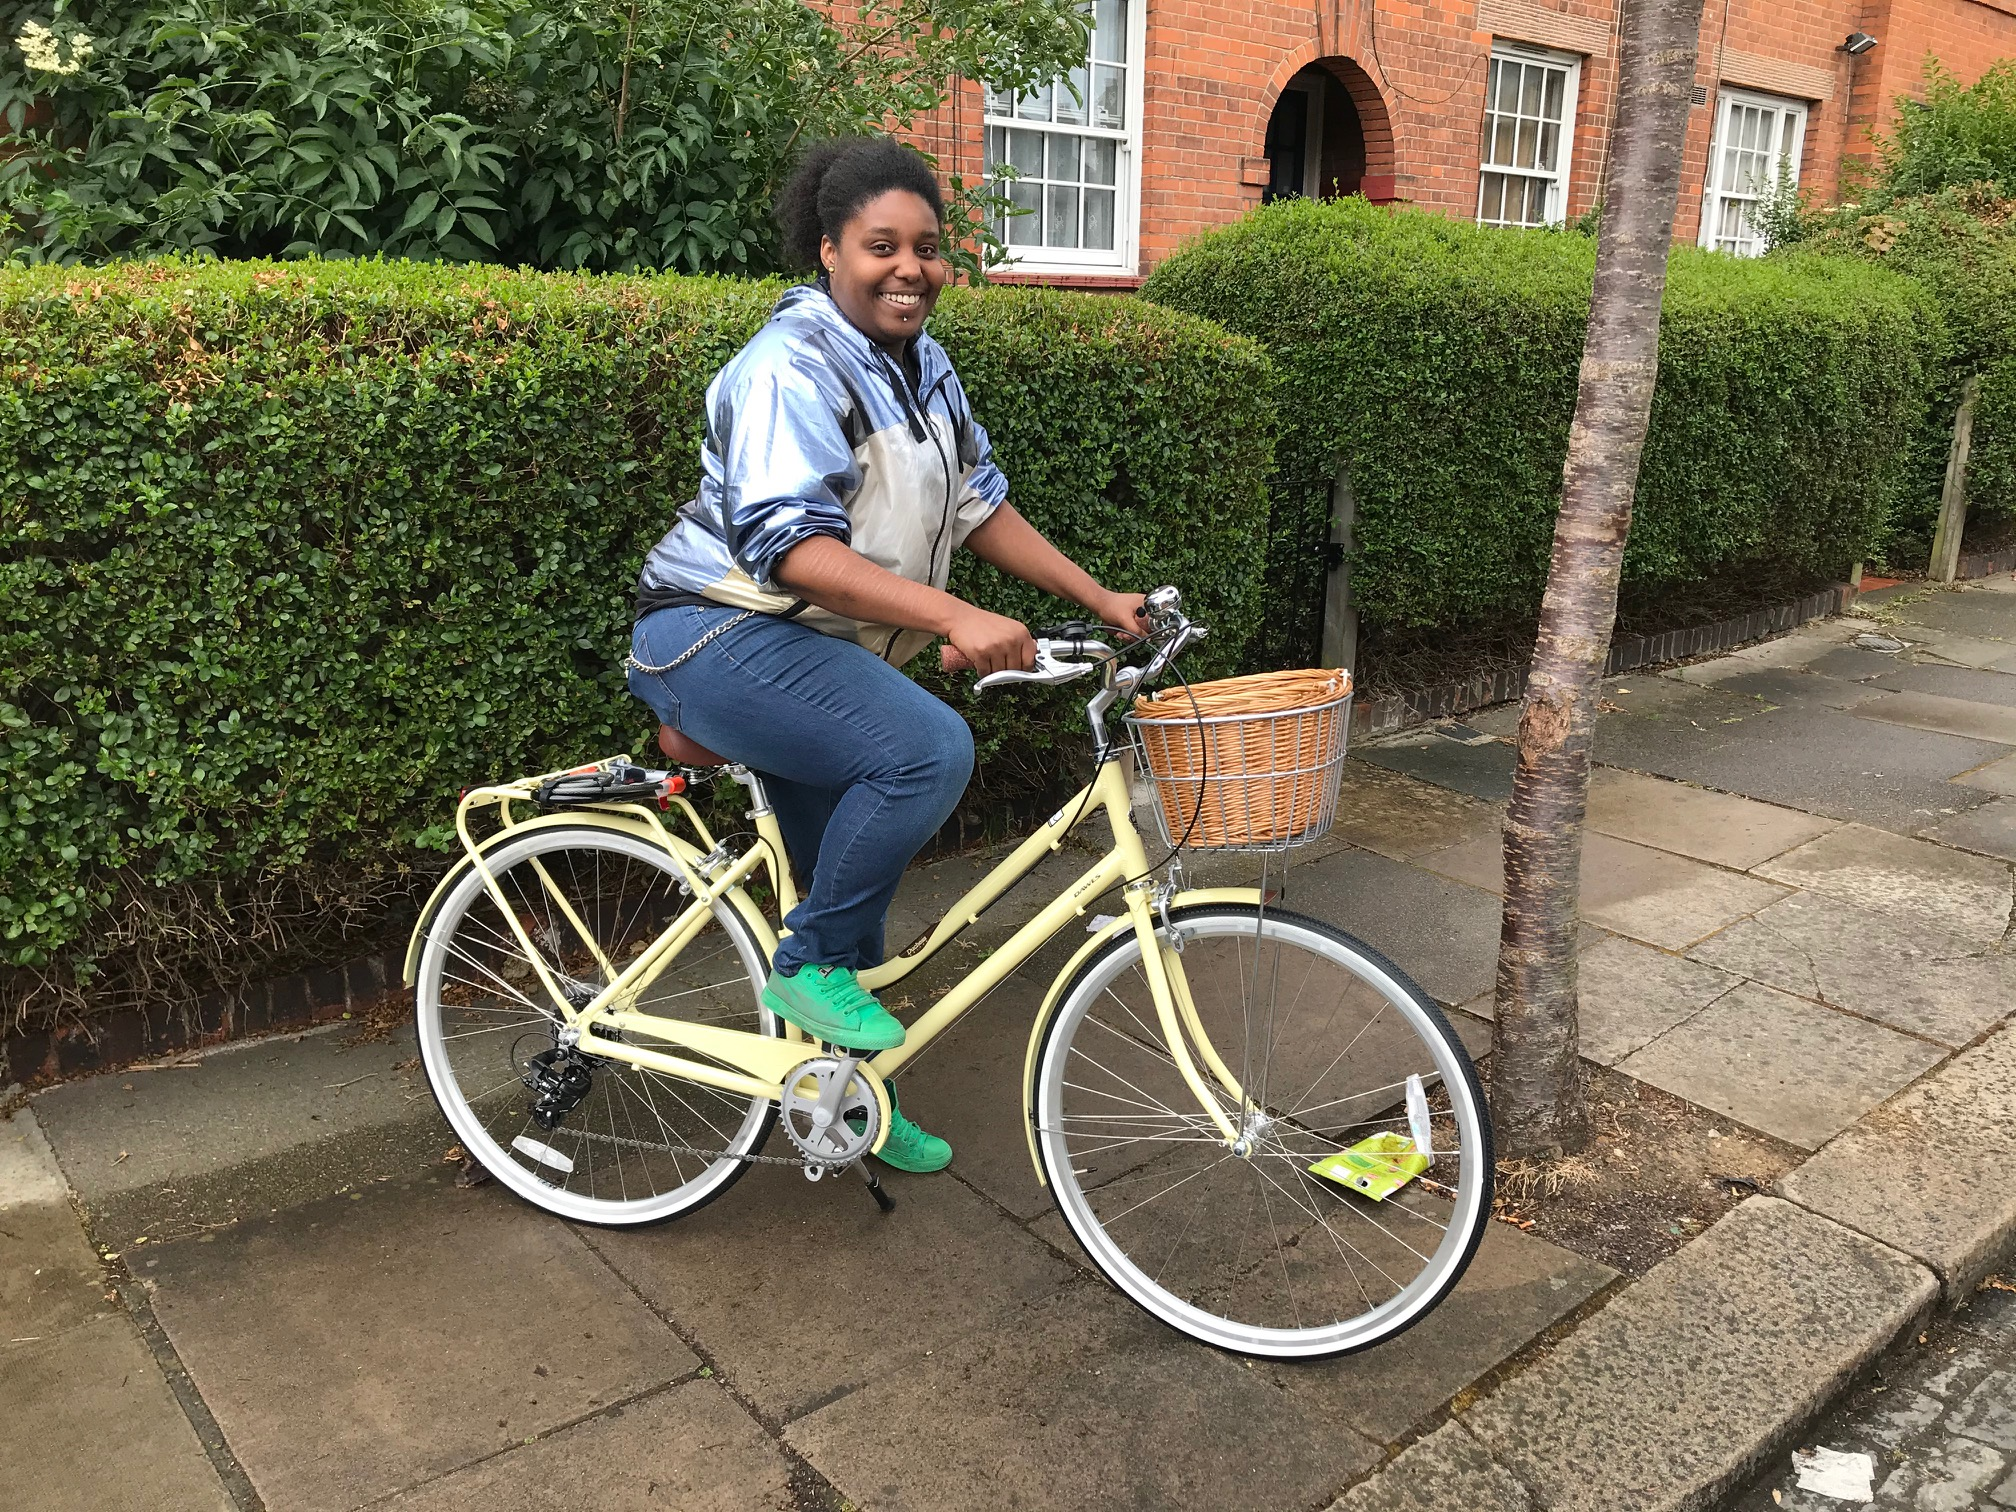 A woman sits on a dutch-style bike with a basket on the front, smiling at the camera